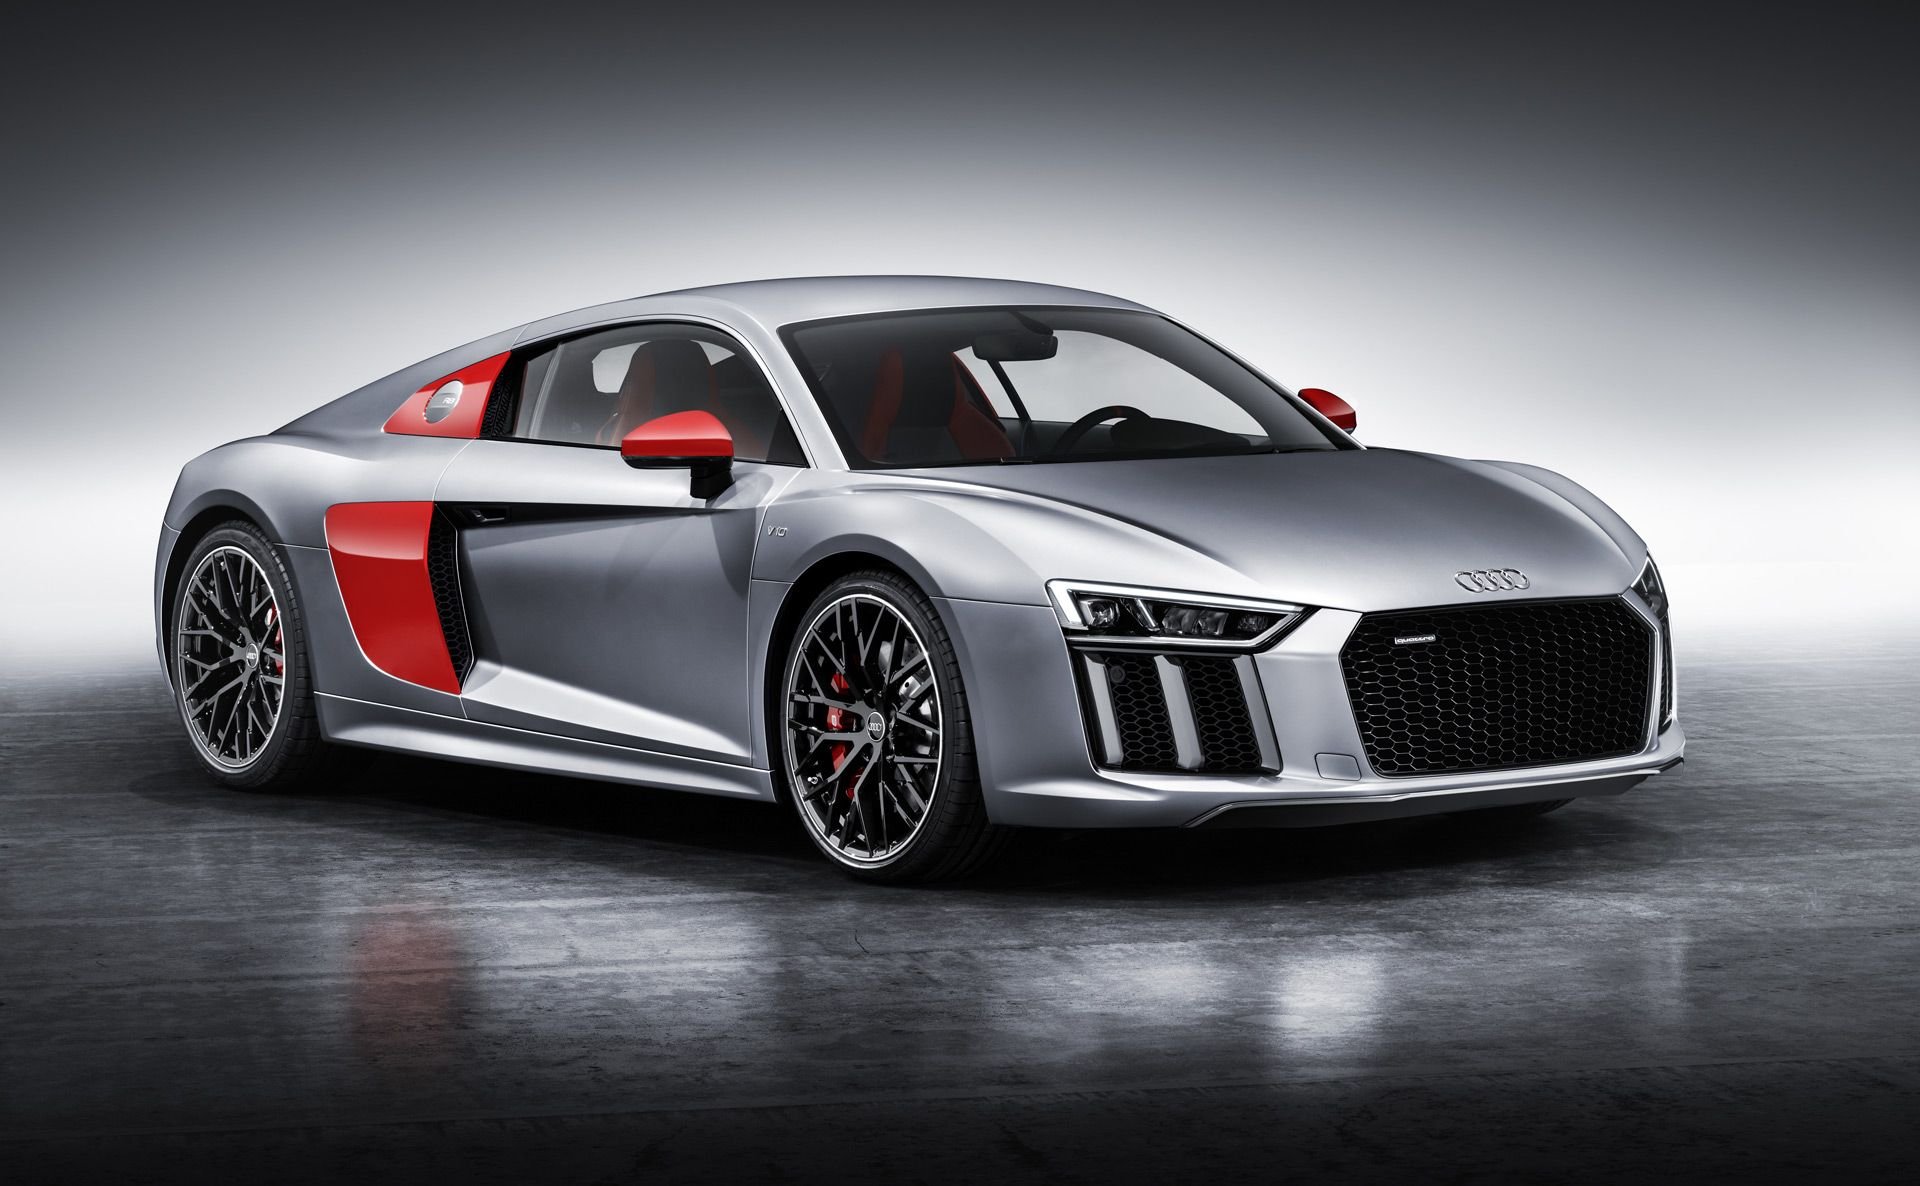 2018 Audi R8 Colors Release Date Redesign Price Audi Can Make